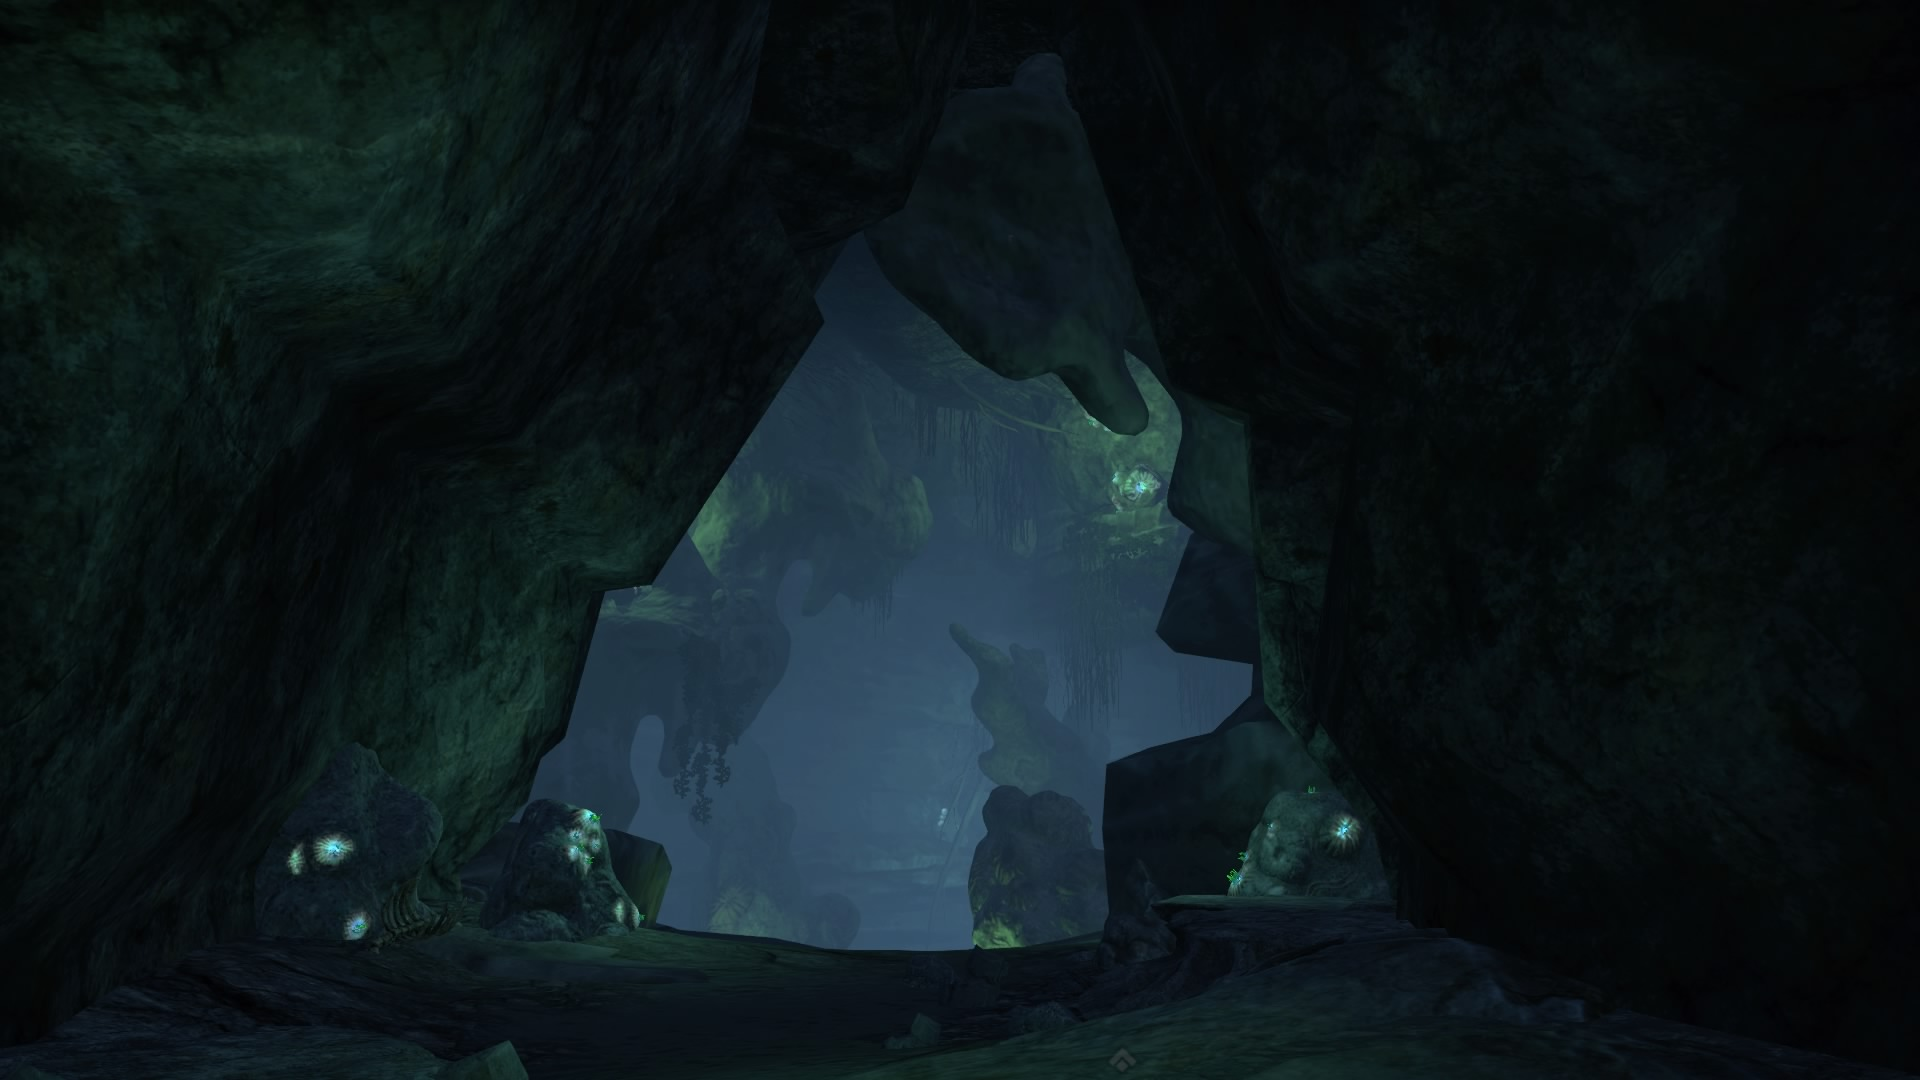 More caves under the sinkhole